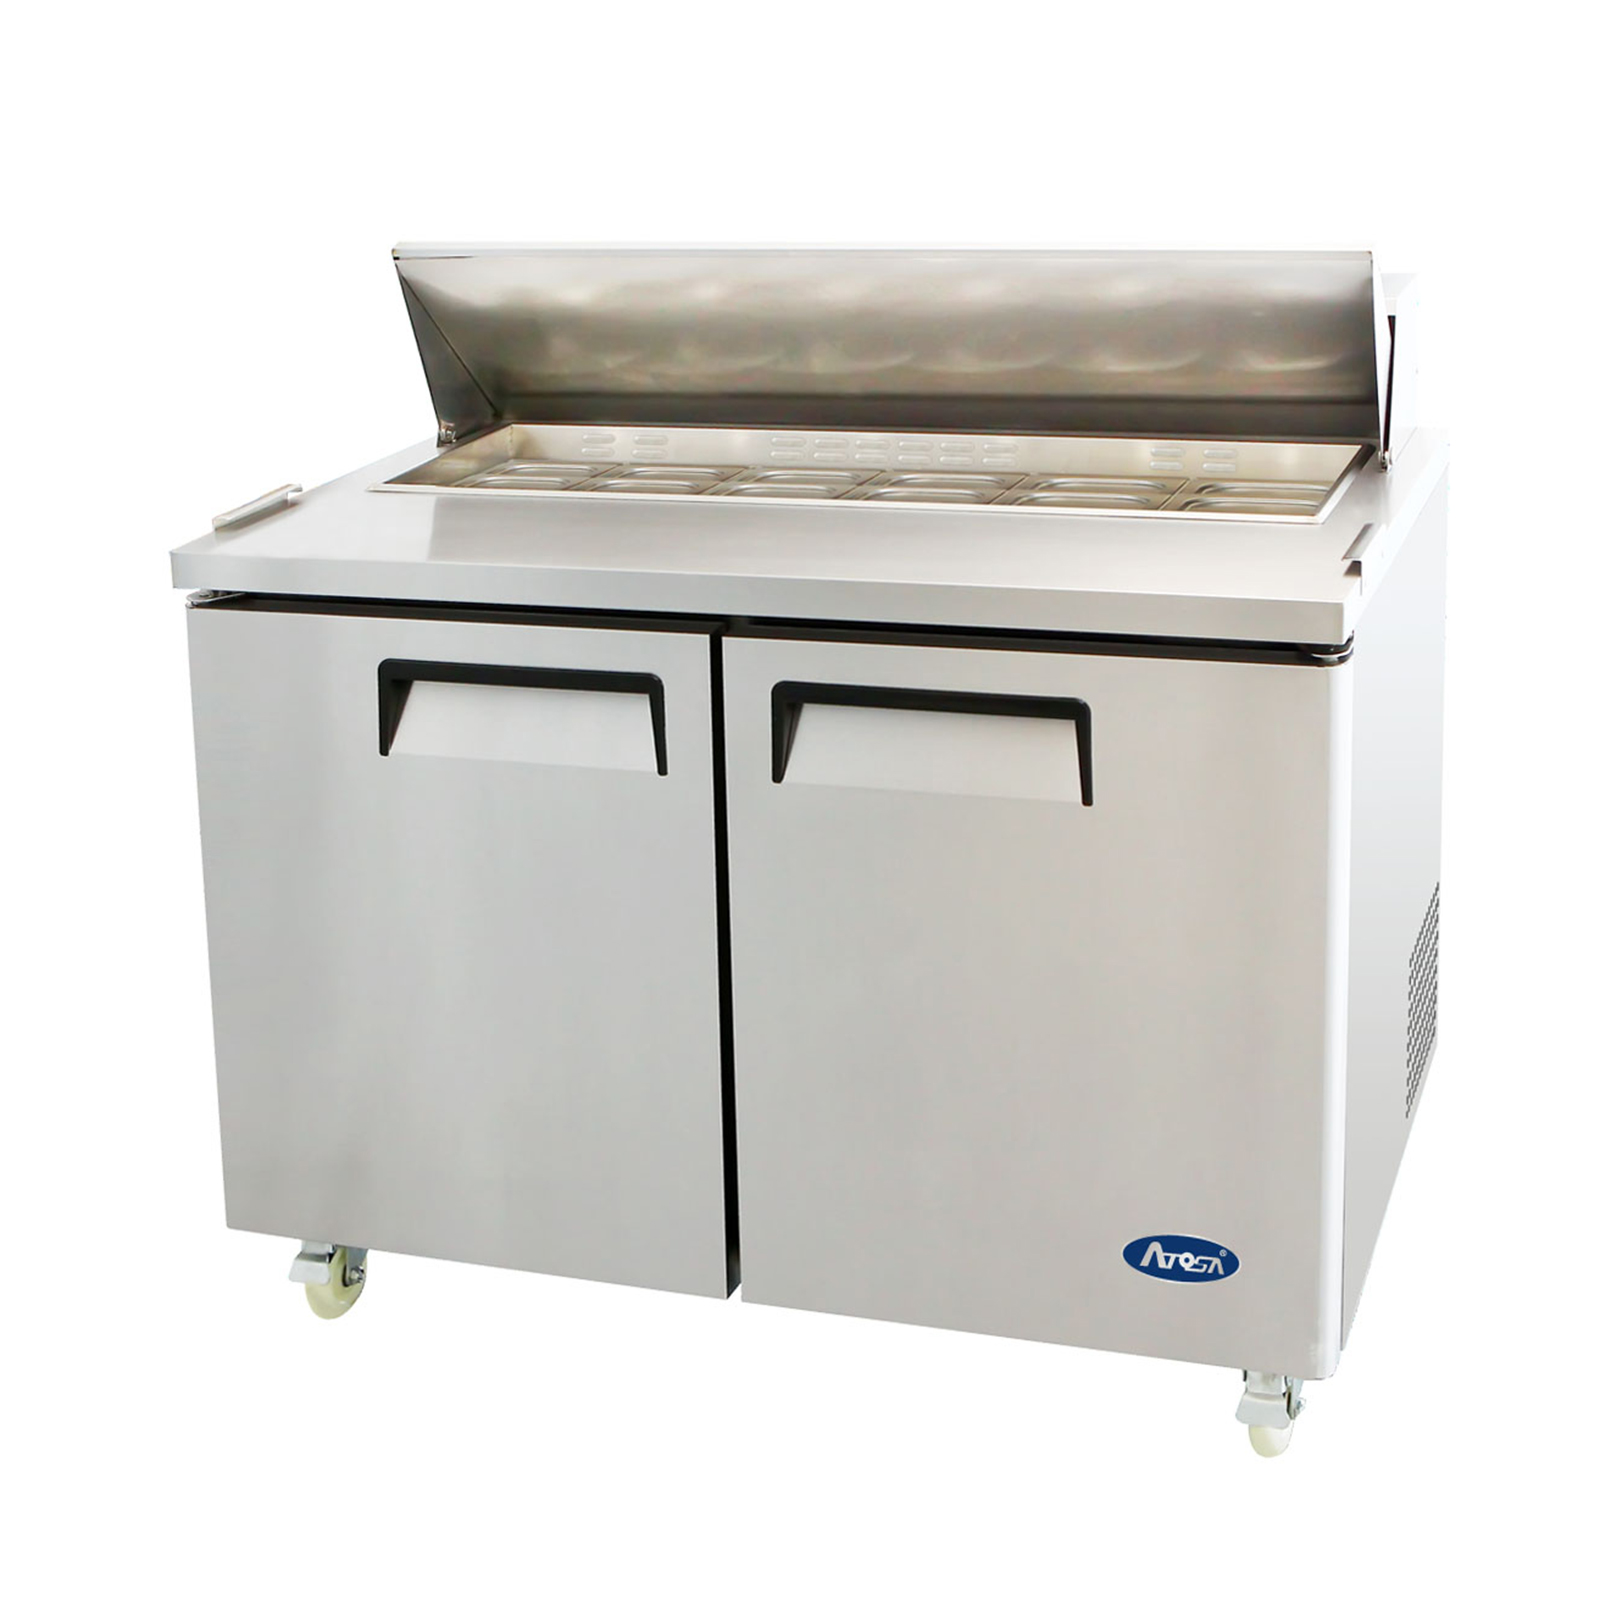 Atosa USA MSF8302GR refrigerated counter, sandwich / salad unit